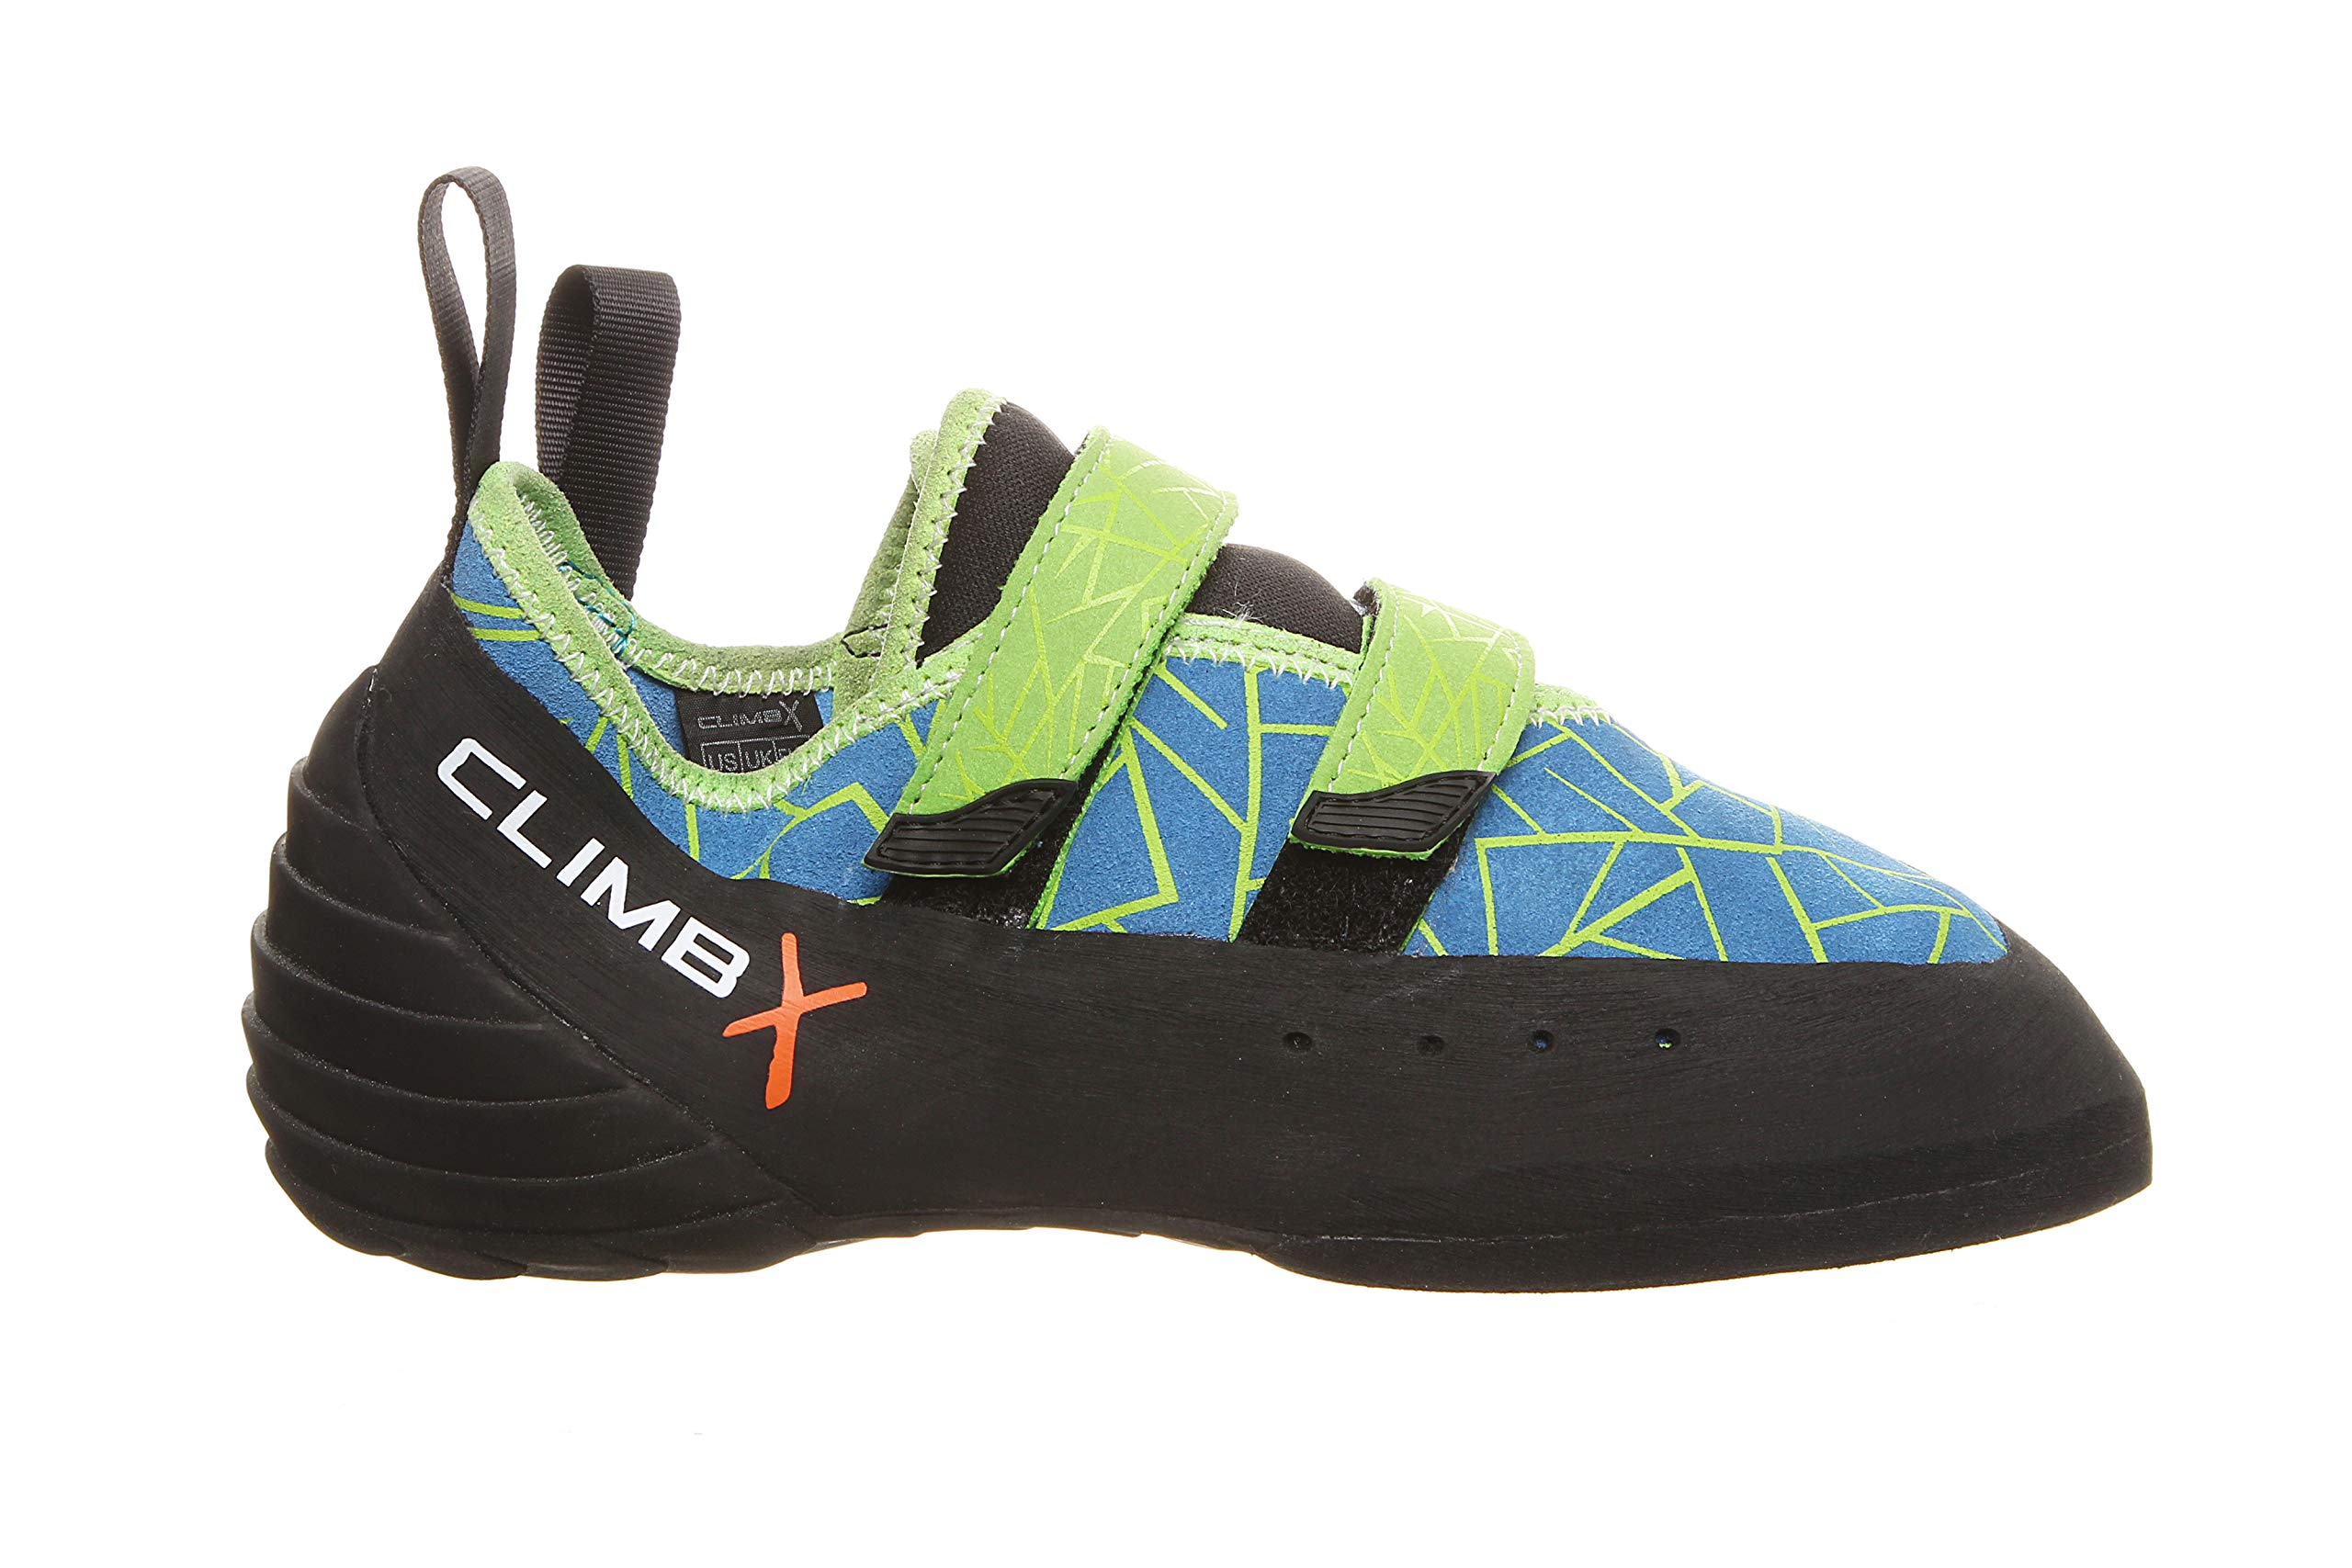 Climb X Redpoint Strap NLV Men's/Women's Climbing Shoe with Sickle M-16 Climbing Brush (8.5, Ocean/Lime) by Climb X